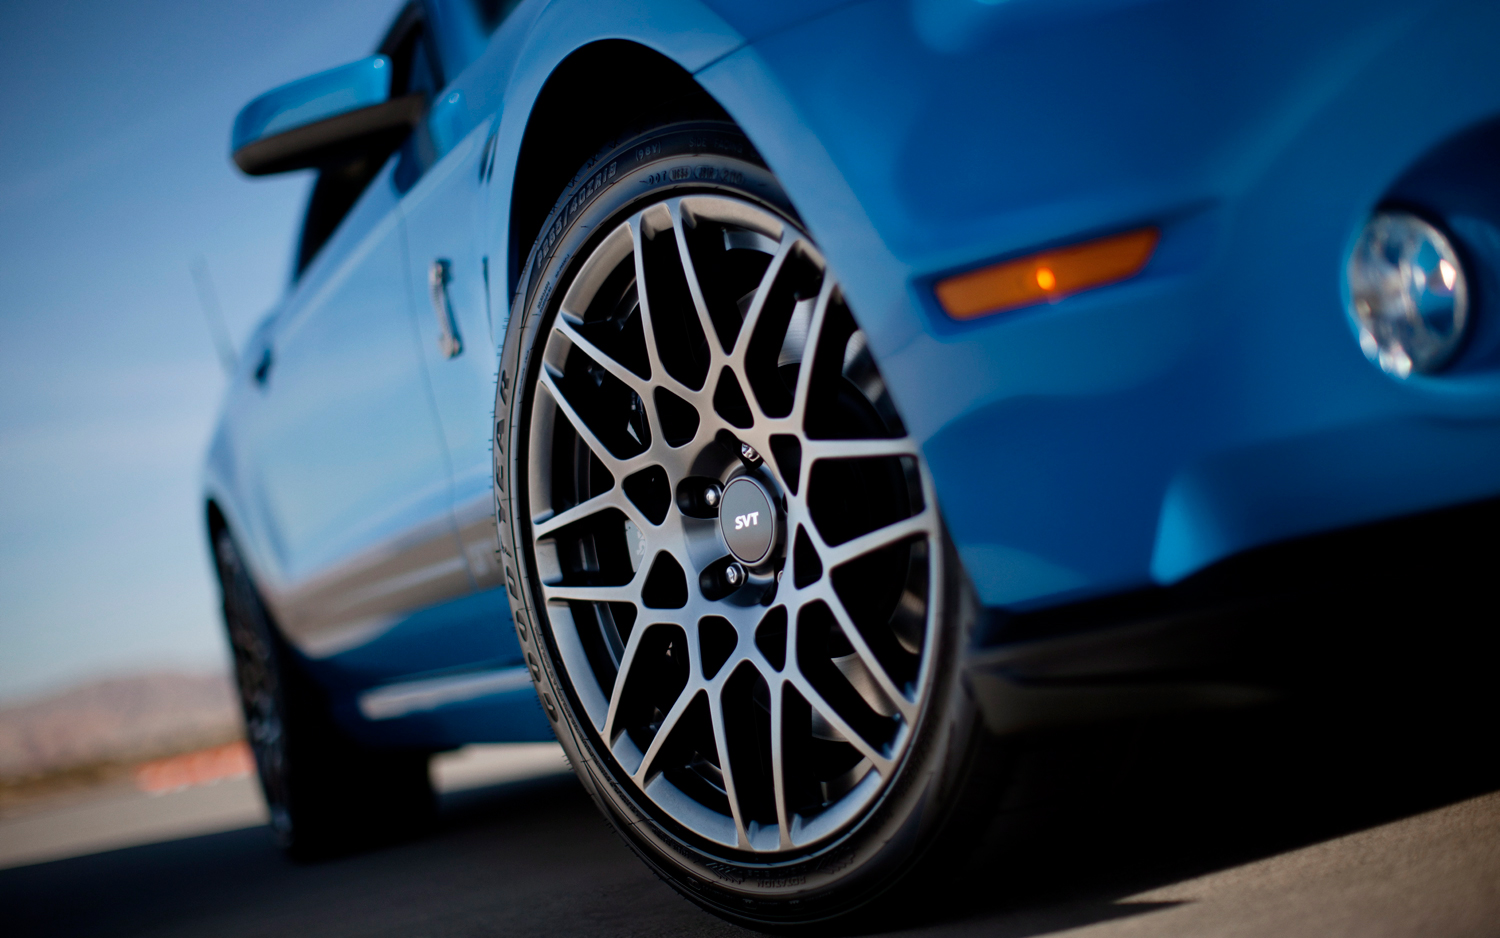 Ford Shelby GT500 wheels #3